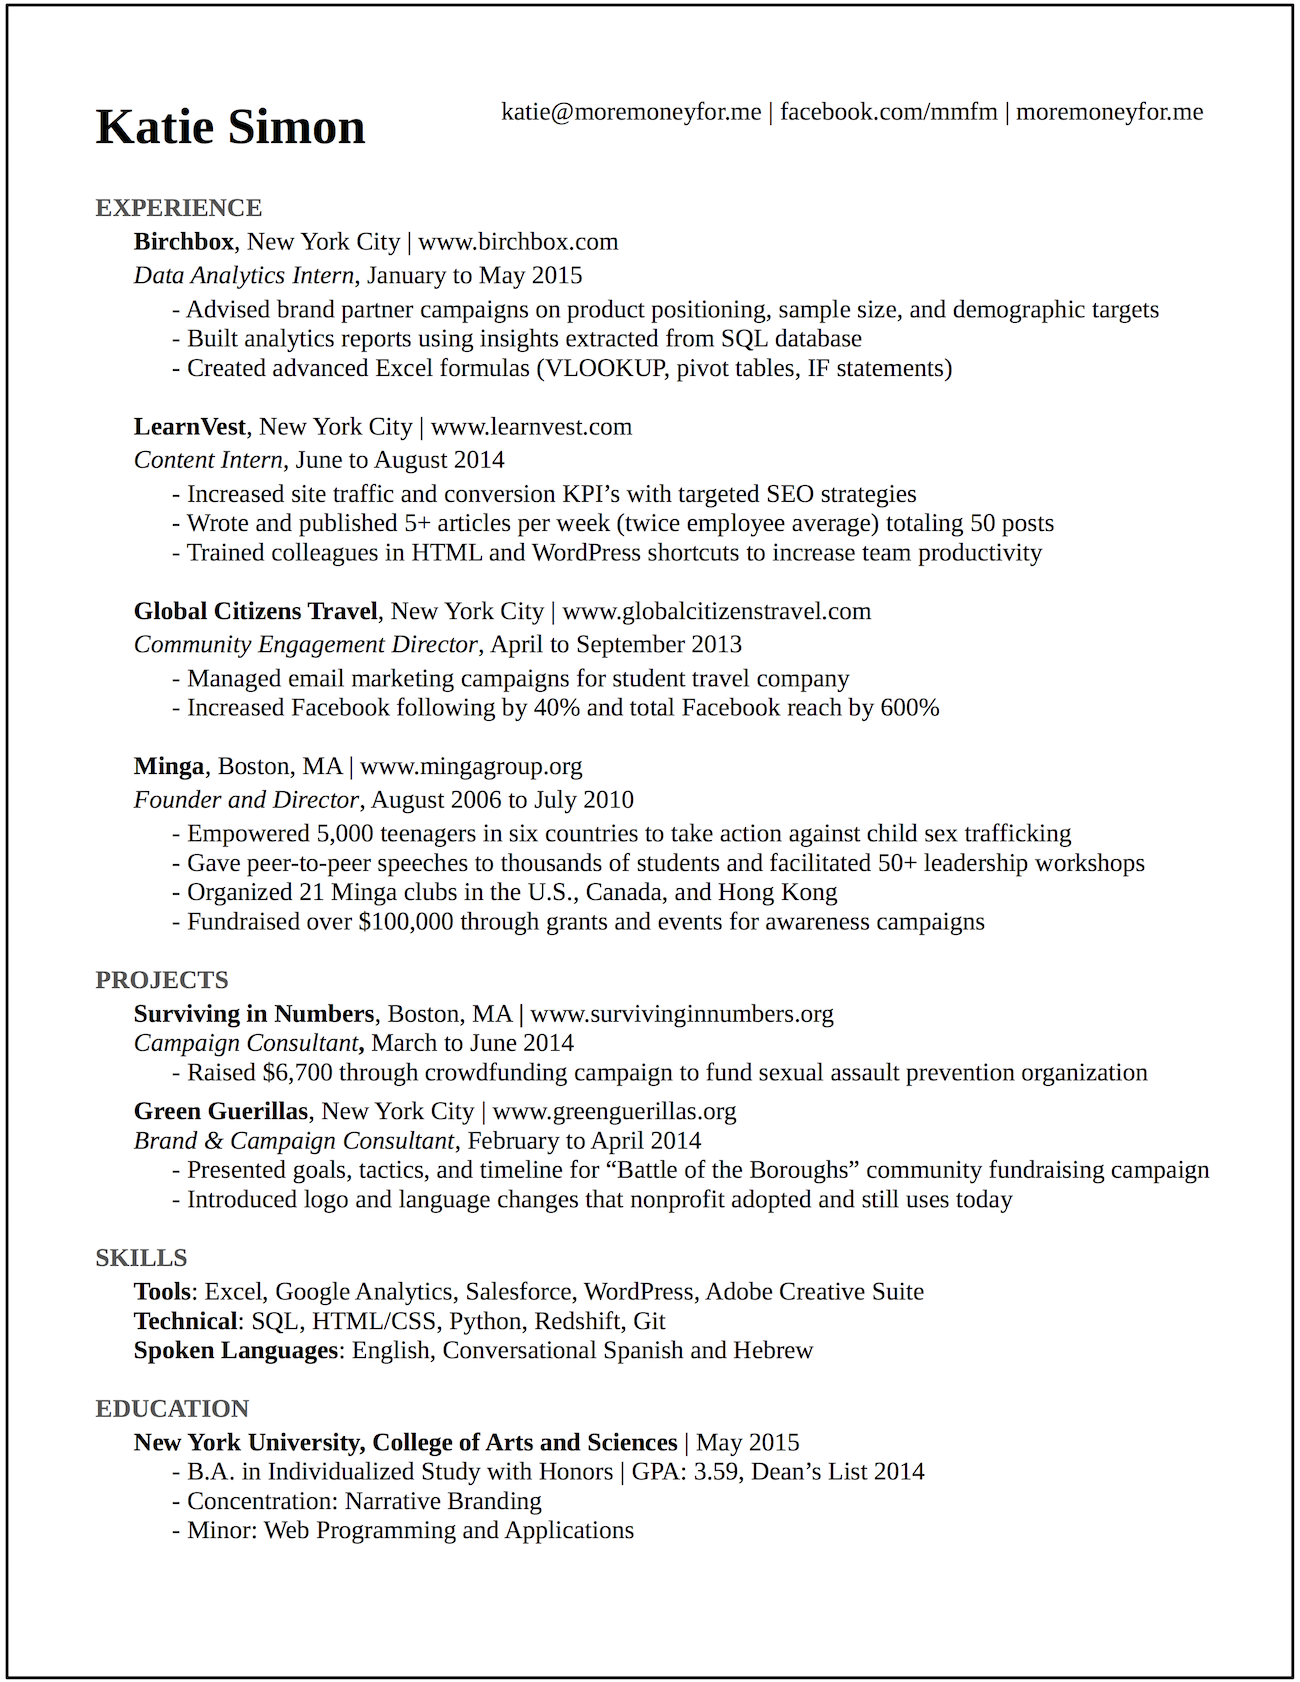 This CV landed me interviews at Google and more than 20 top startups ...